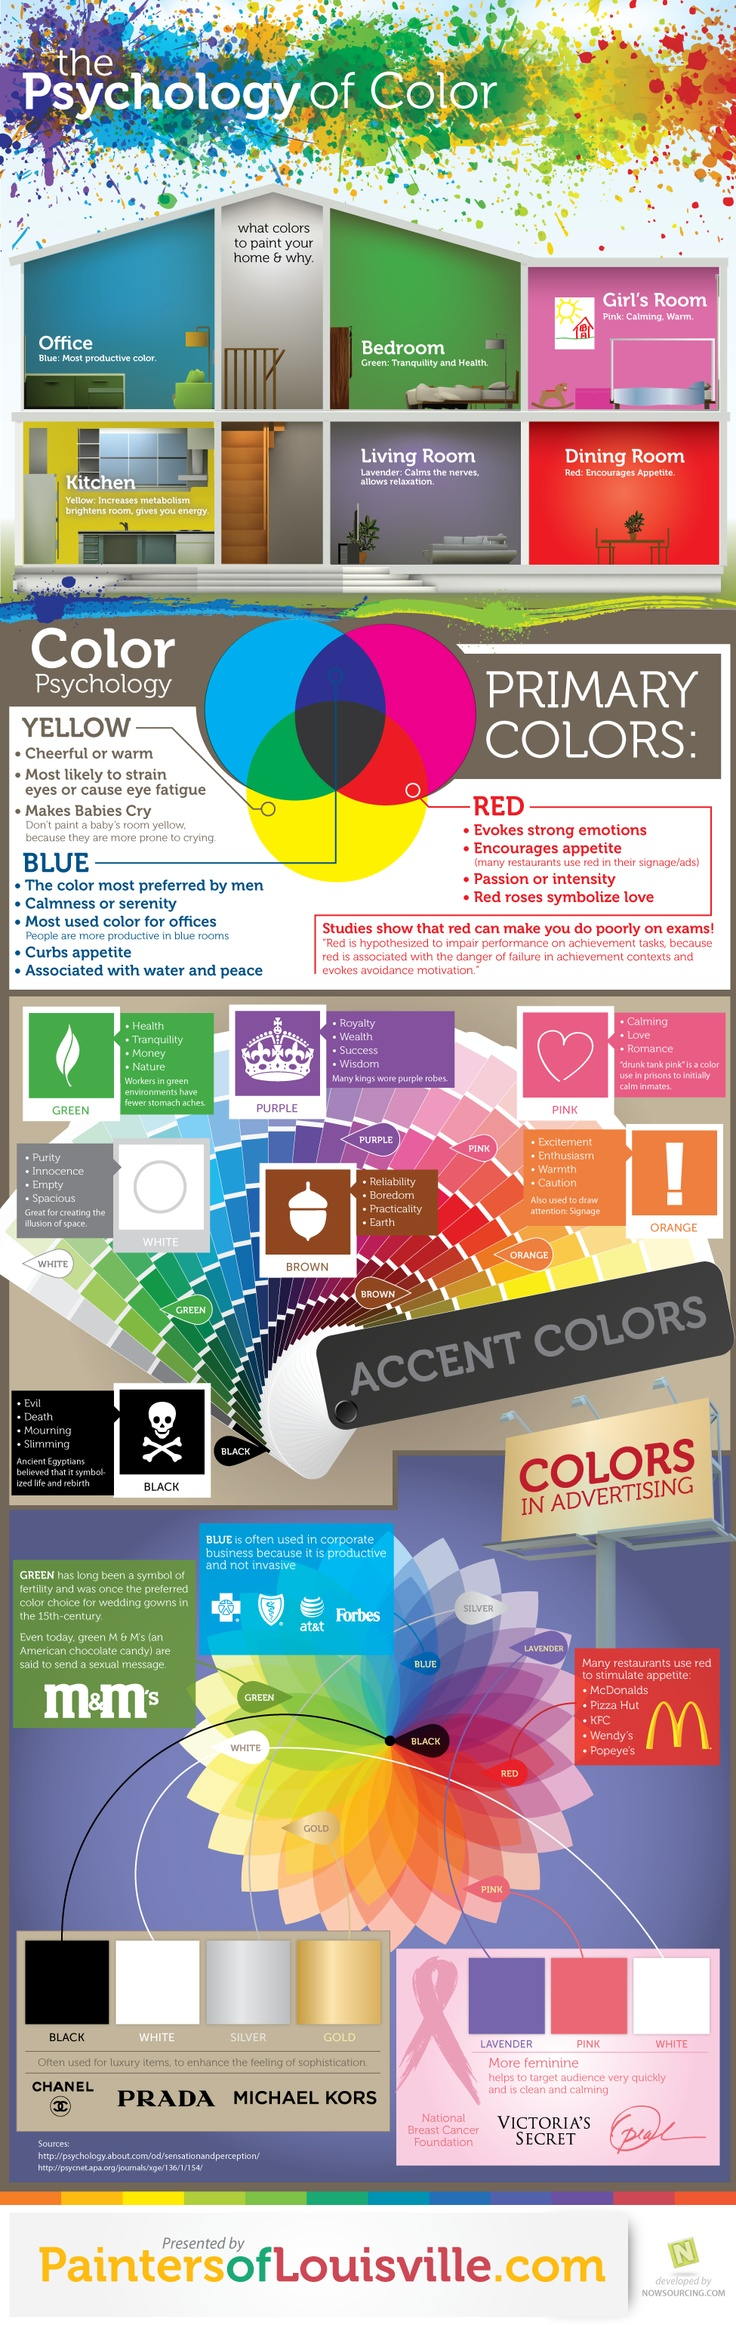 Color Psi...this right now proves I'm kindof a nerd. I love the study of color and the psychology behind it.